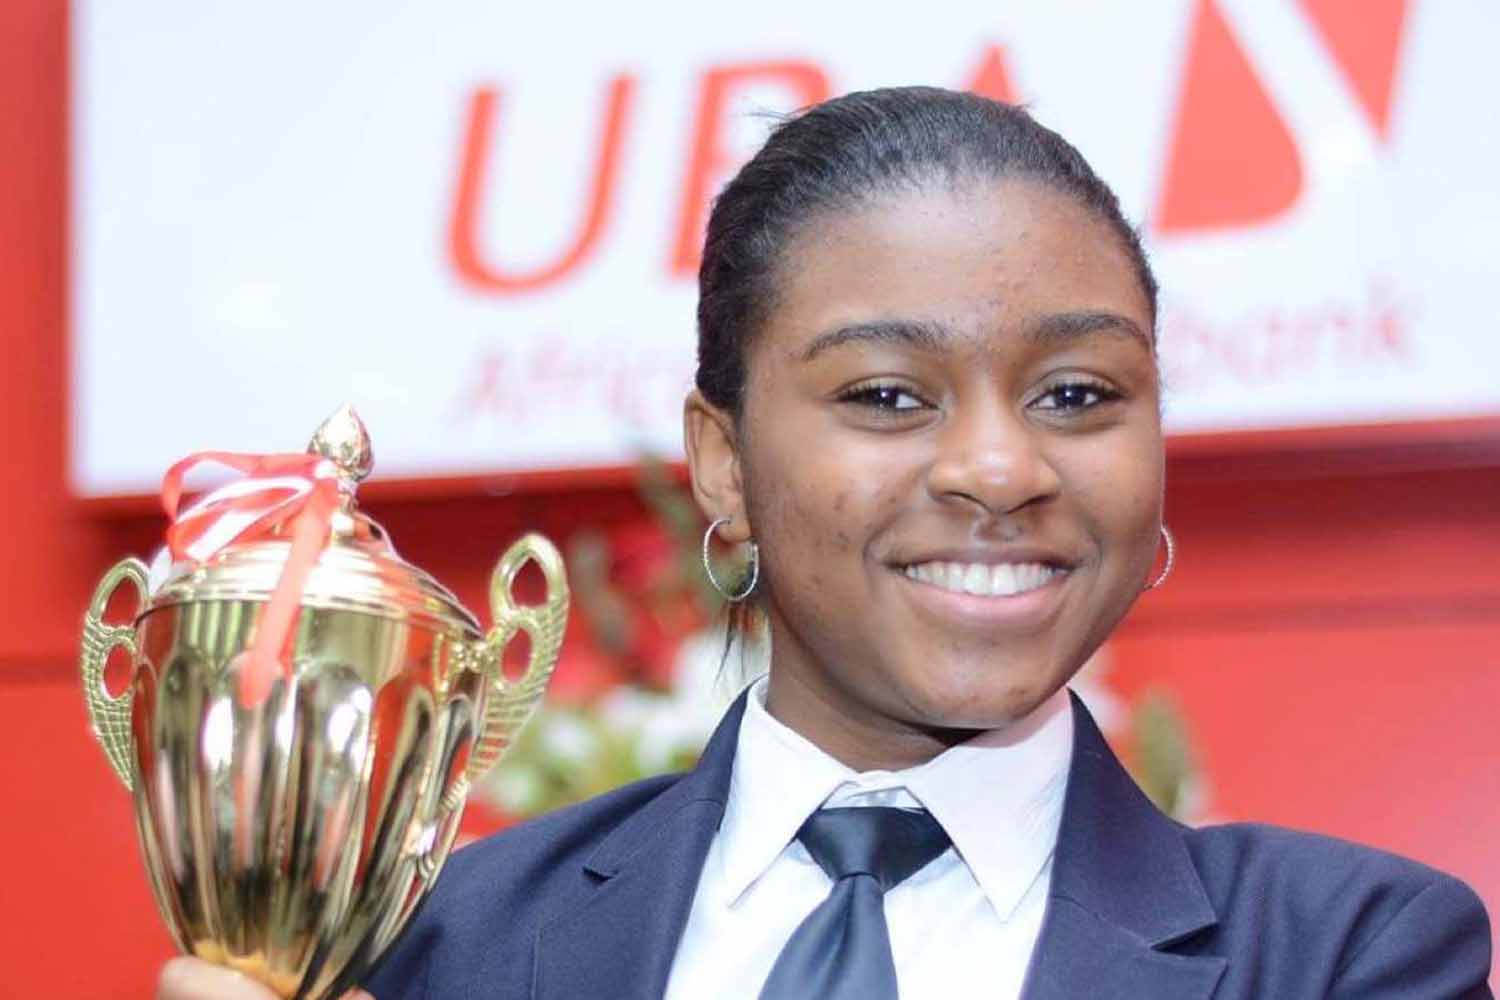 United-Bank-For-Africa-UBA-Foundation-Education